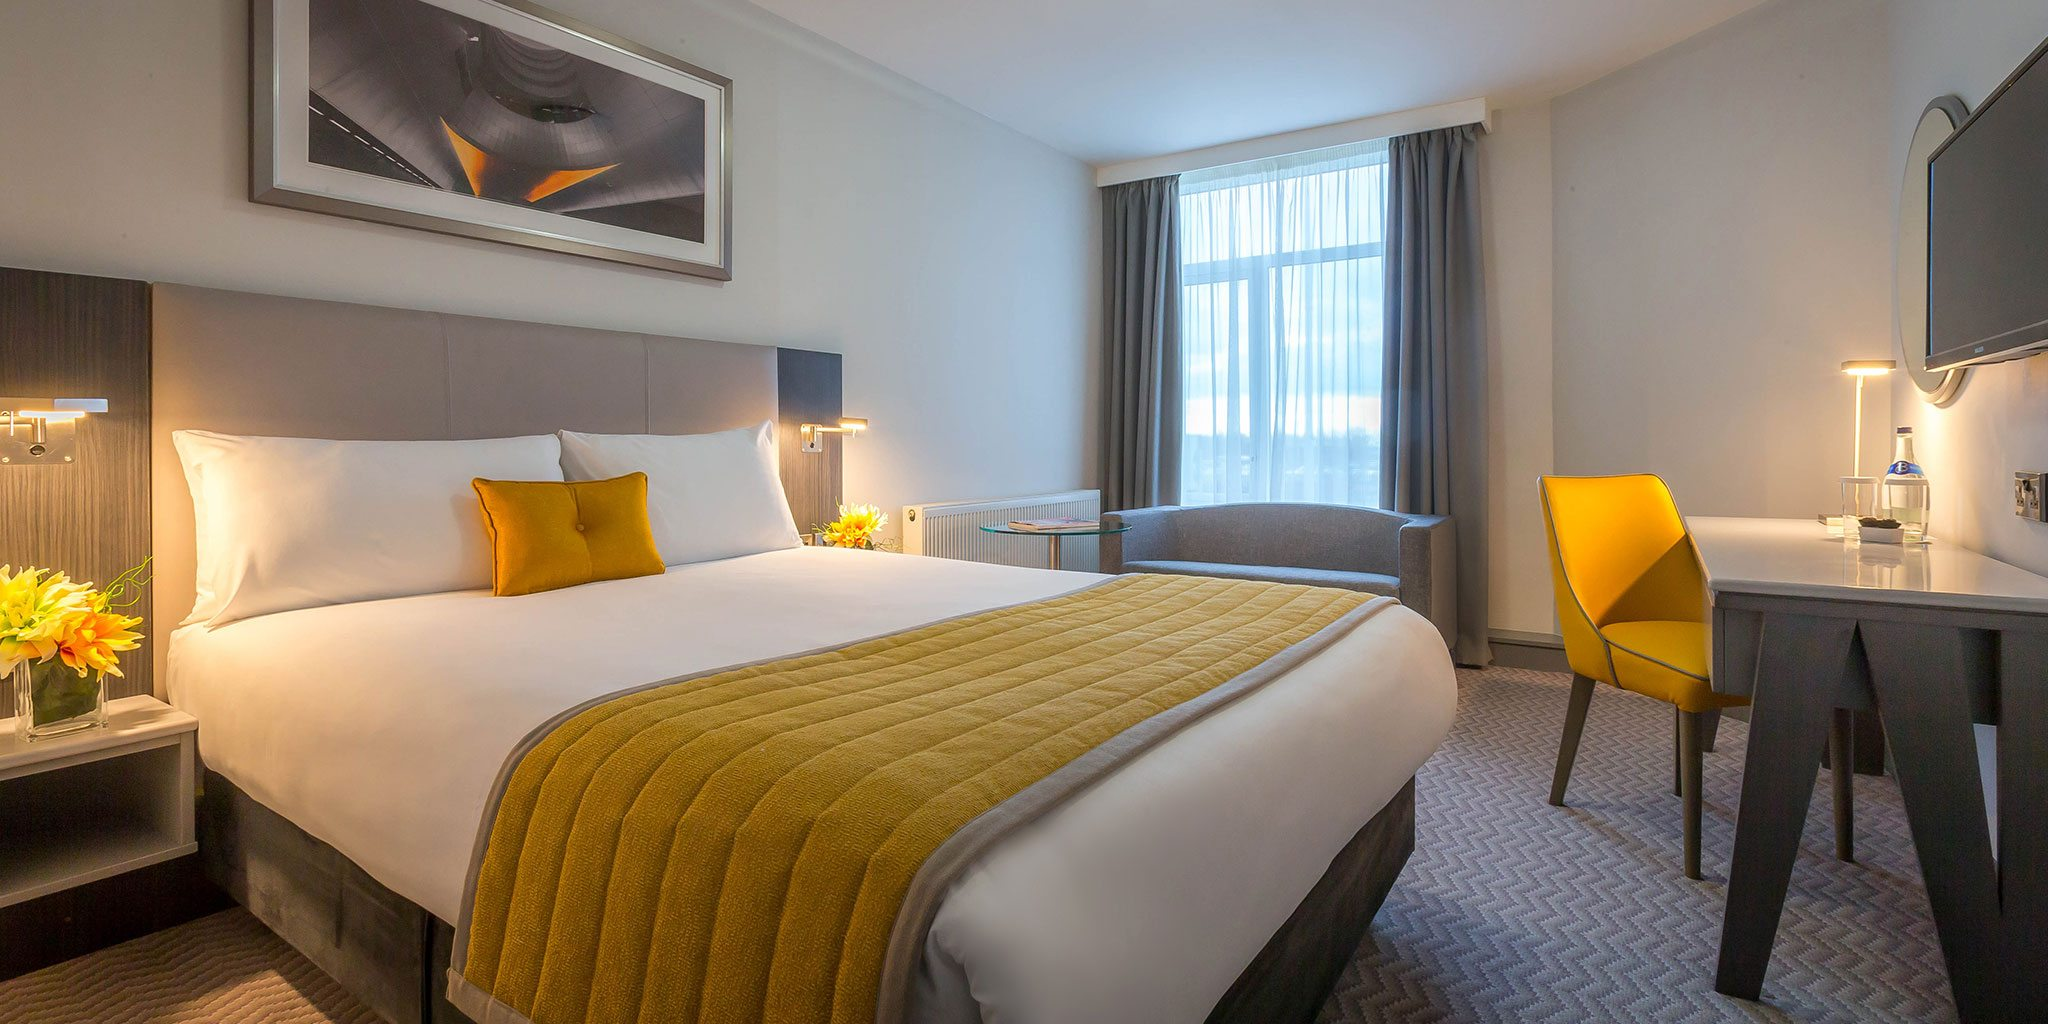 Maldron Hotel in Limerick Superior Double Room